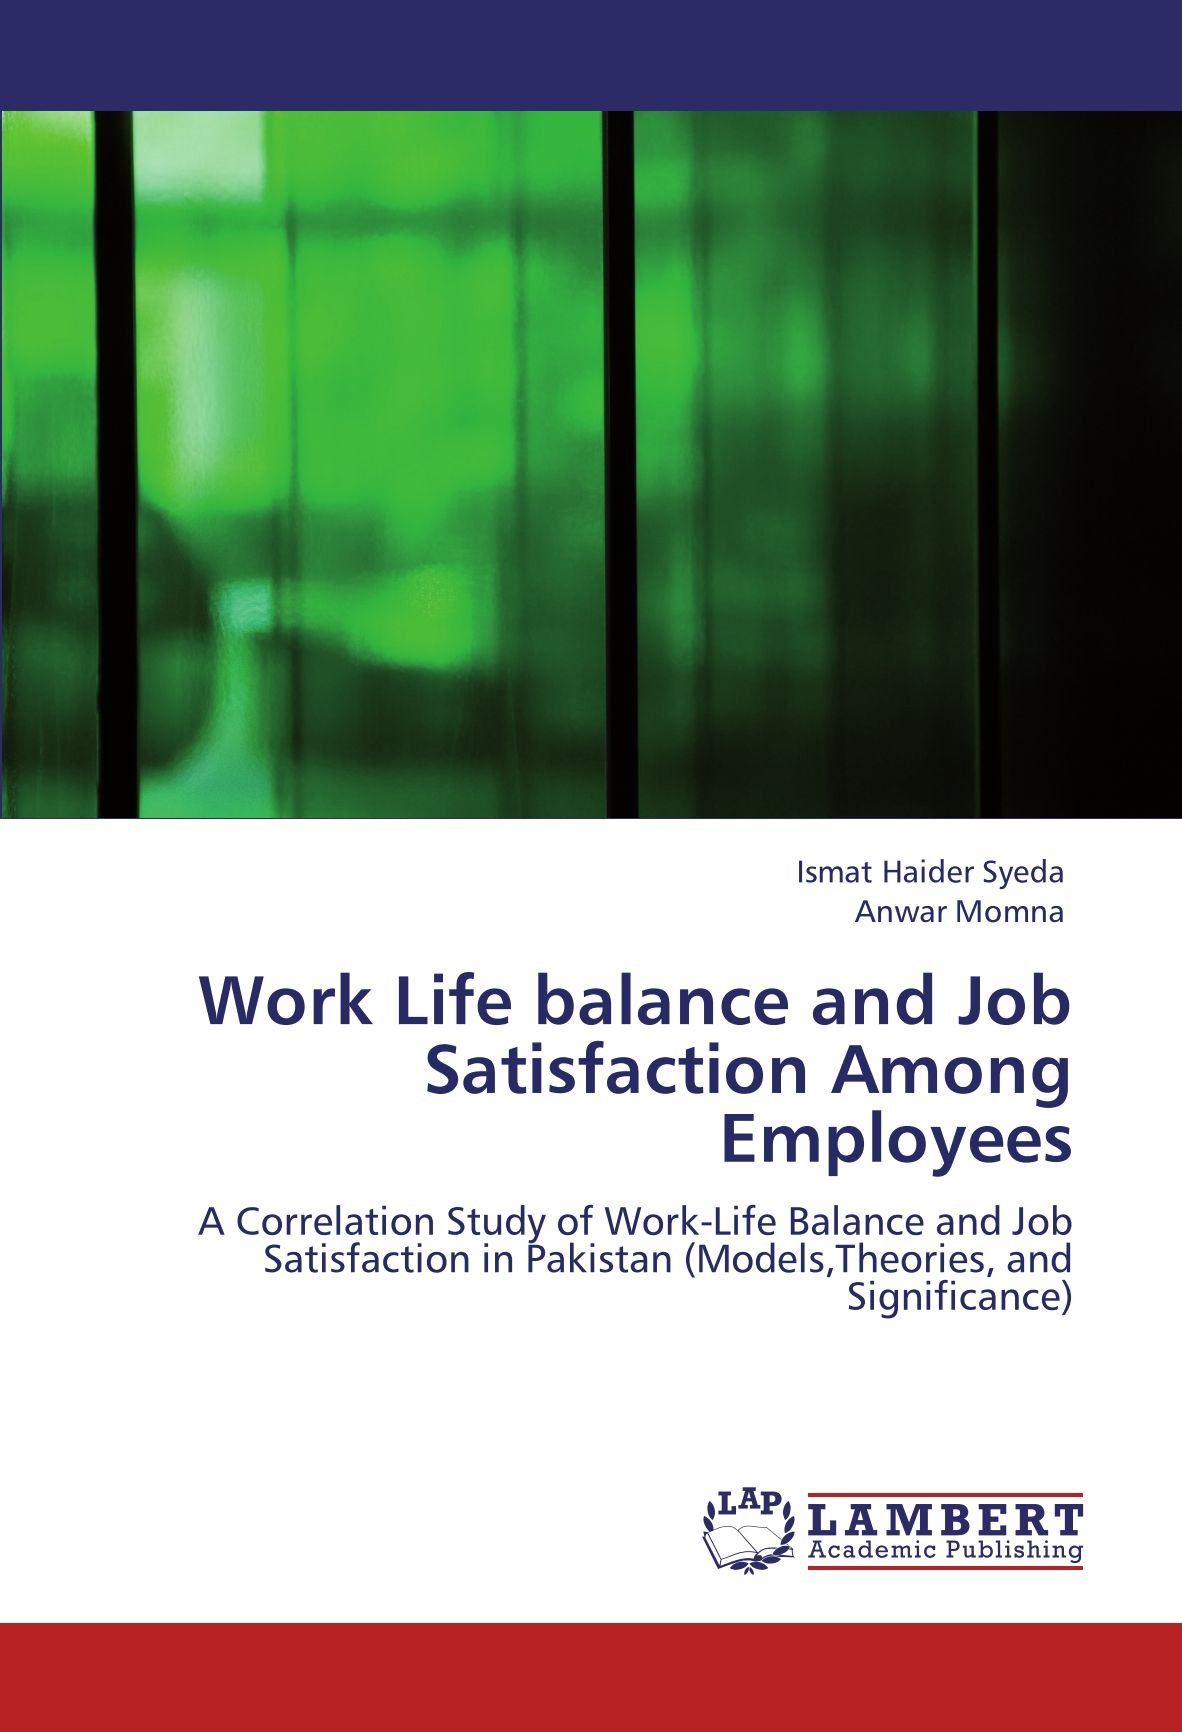 work life balance and job satisfaction among employees a work life balance and job satisfaction among employees a correlation study of work life balance and job satisfaction in models theories